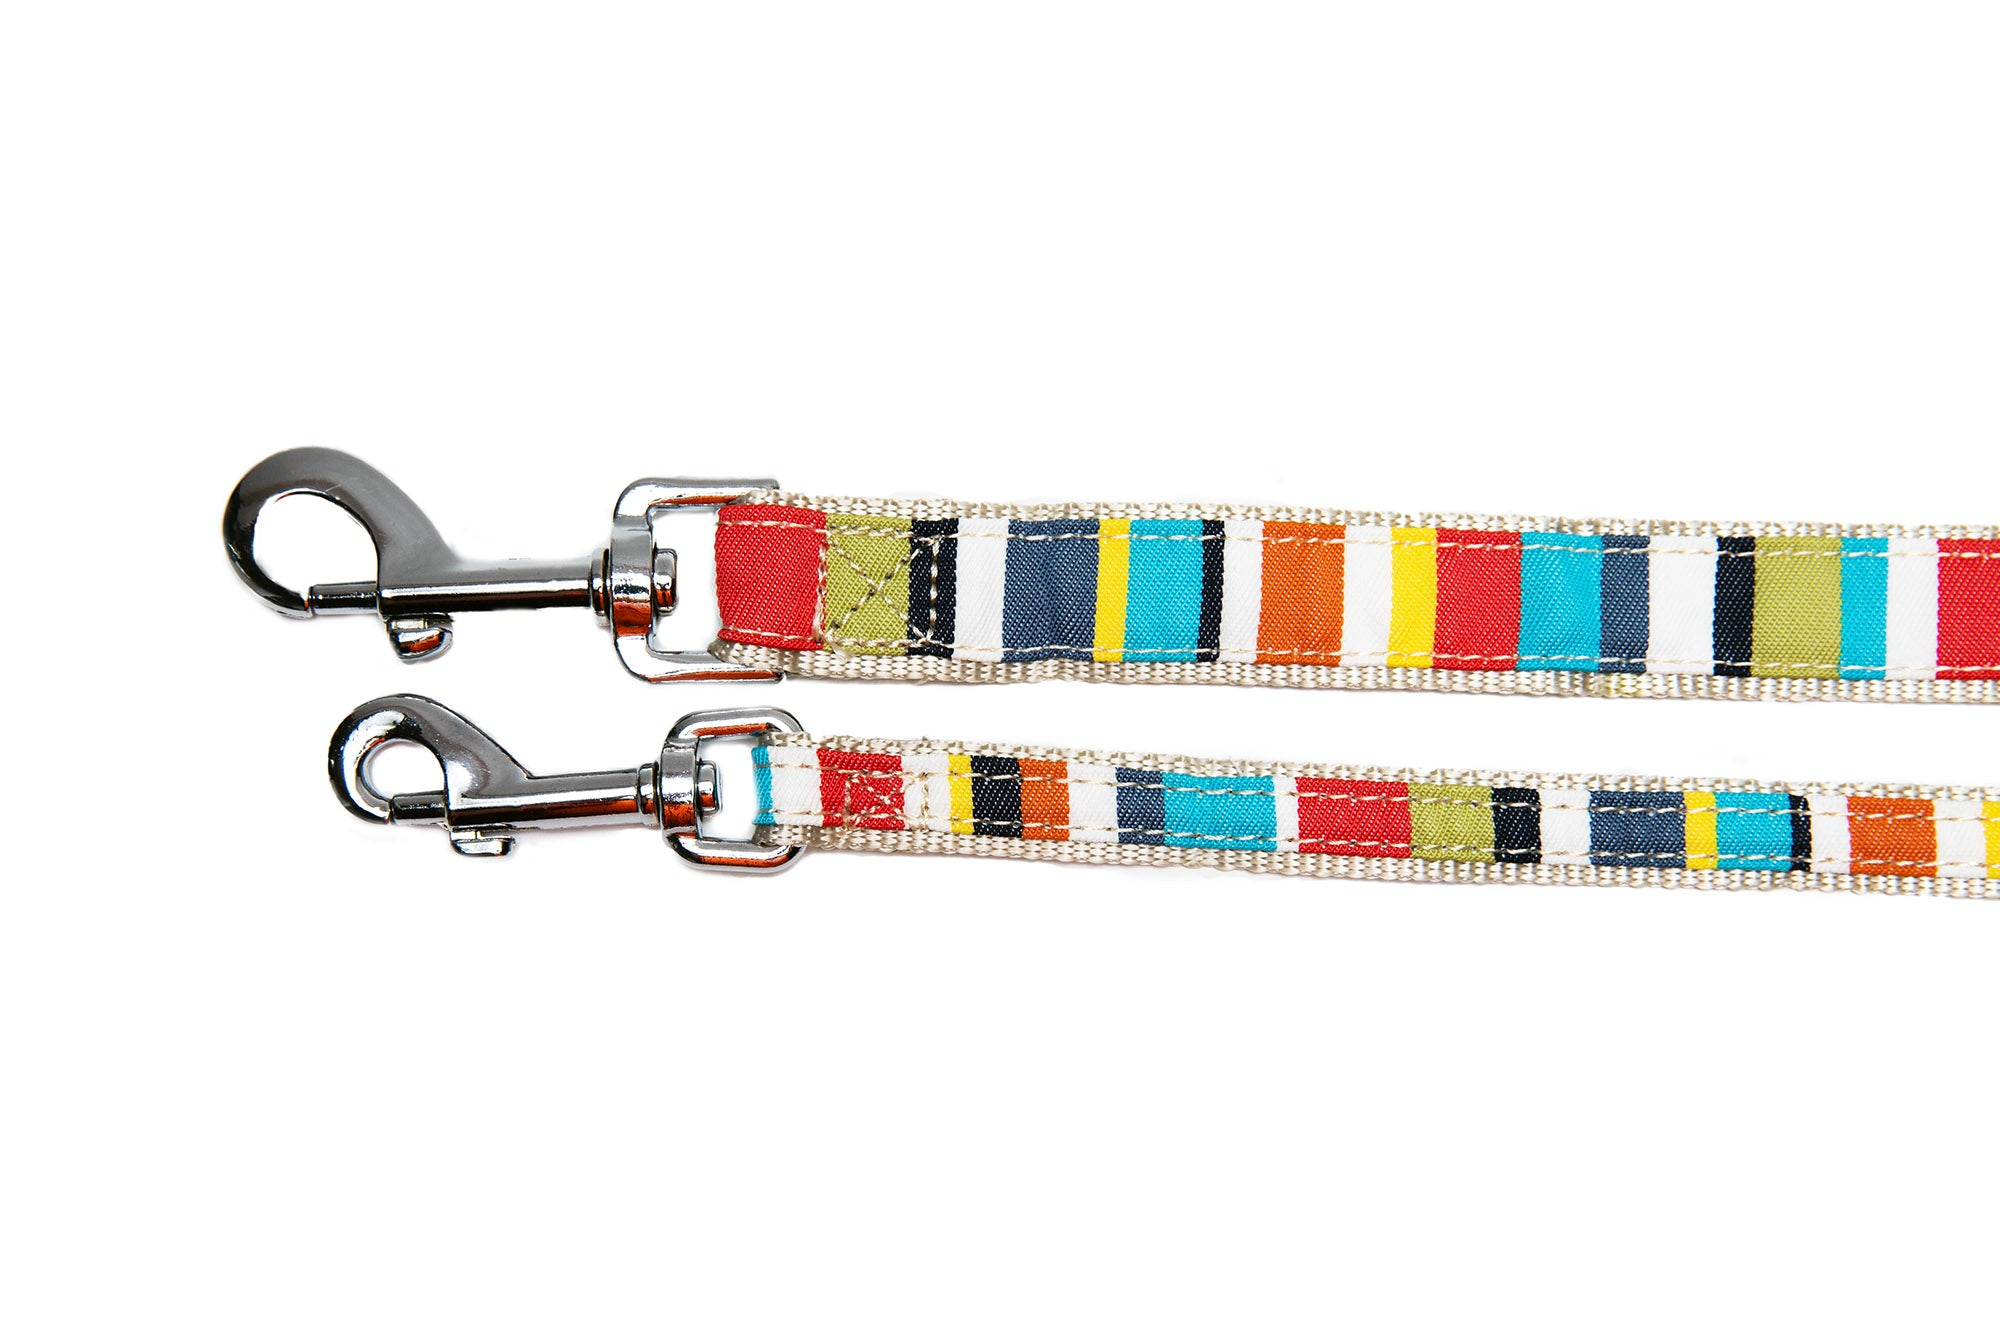 New | Signature Collection - Collar, Harness, & Lead - Reef Stripe